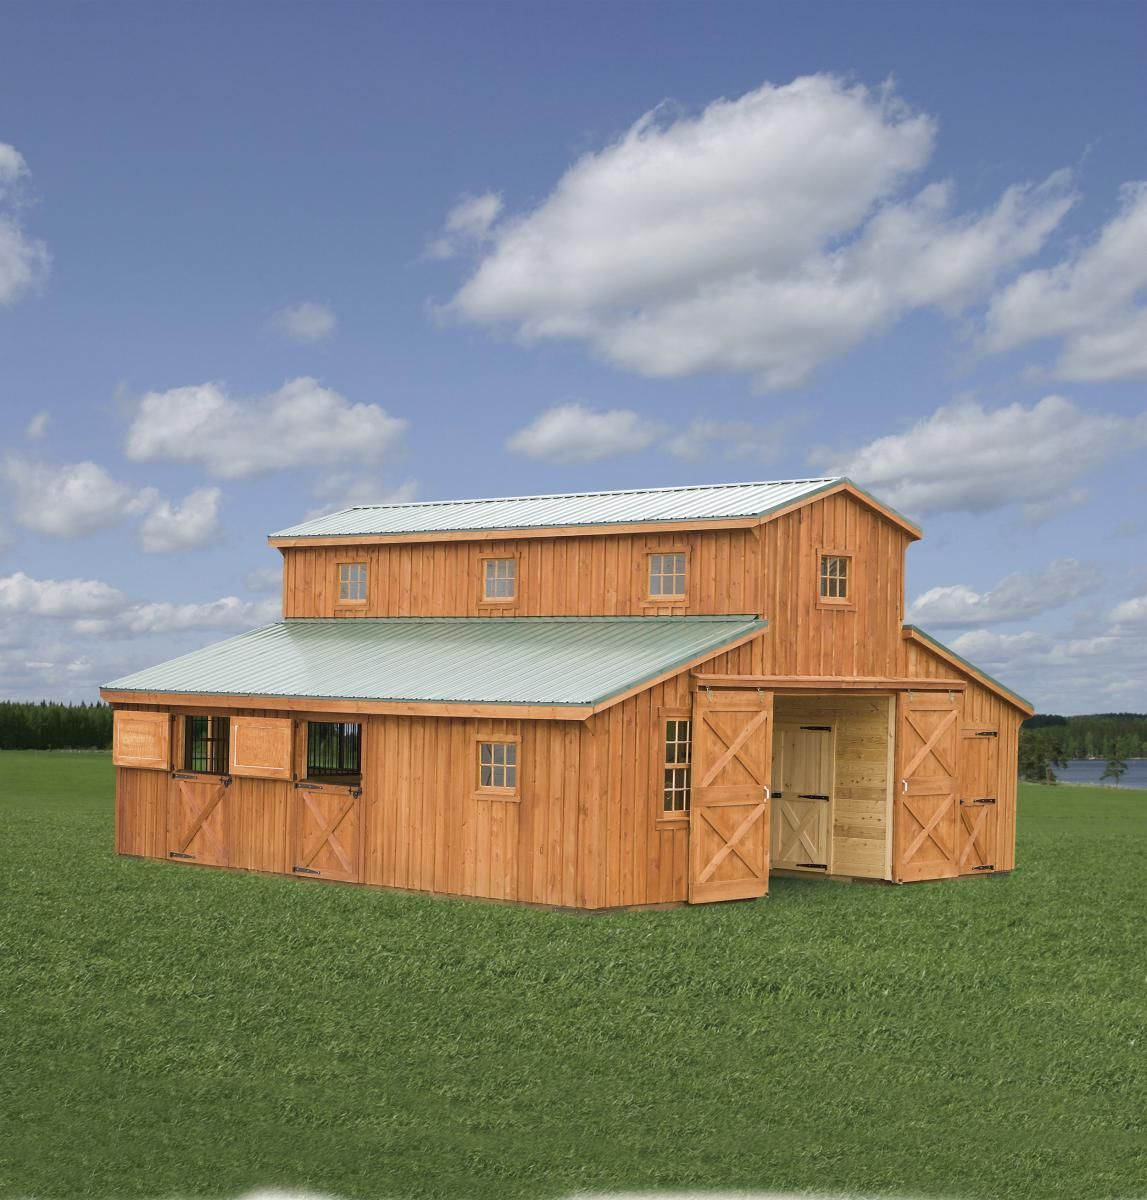 Horse Barns in 2020 Horse barns, Stoltzfus structures